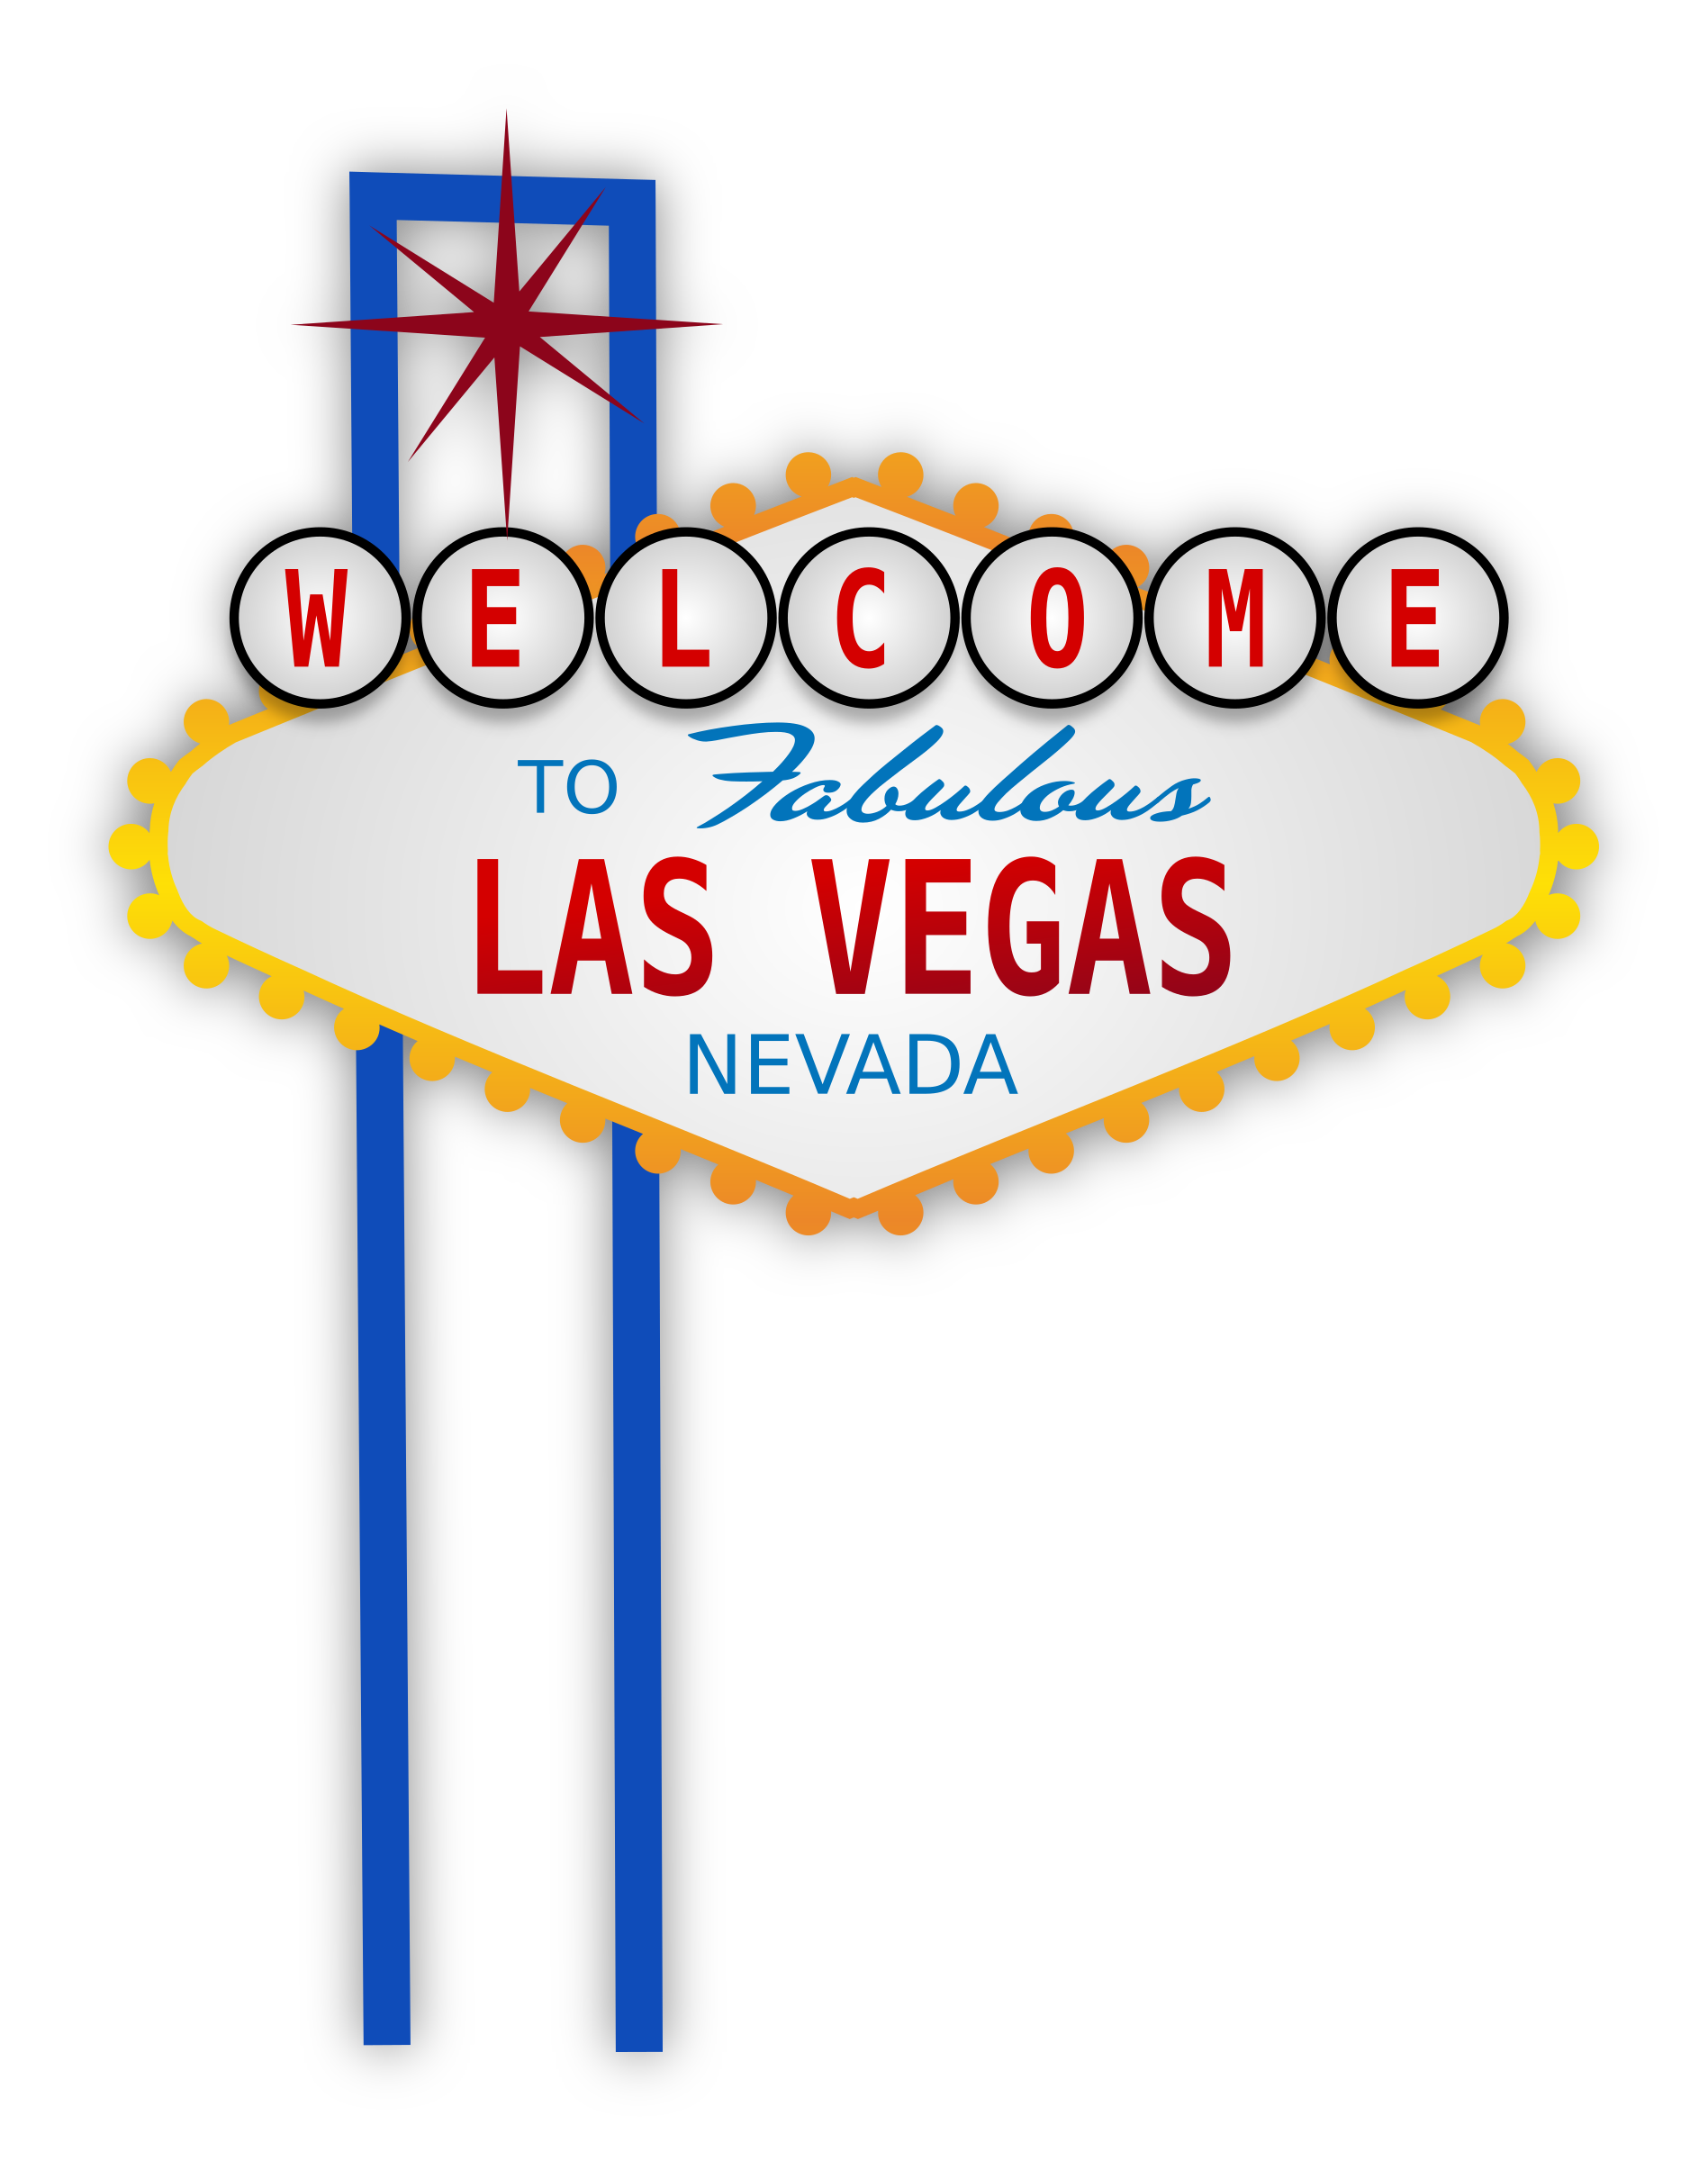 Vegas clipart free icon graphic black and white stock 47+ Las Vegas Clipart   ClipartLook graphic black and white stock